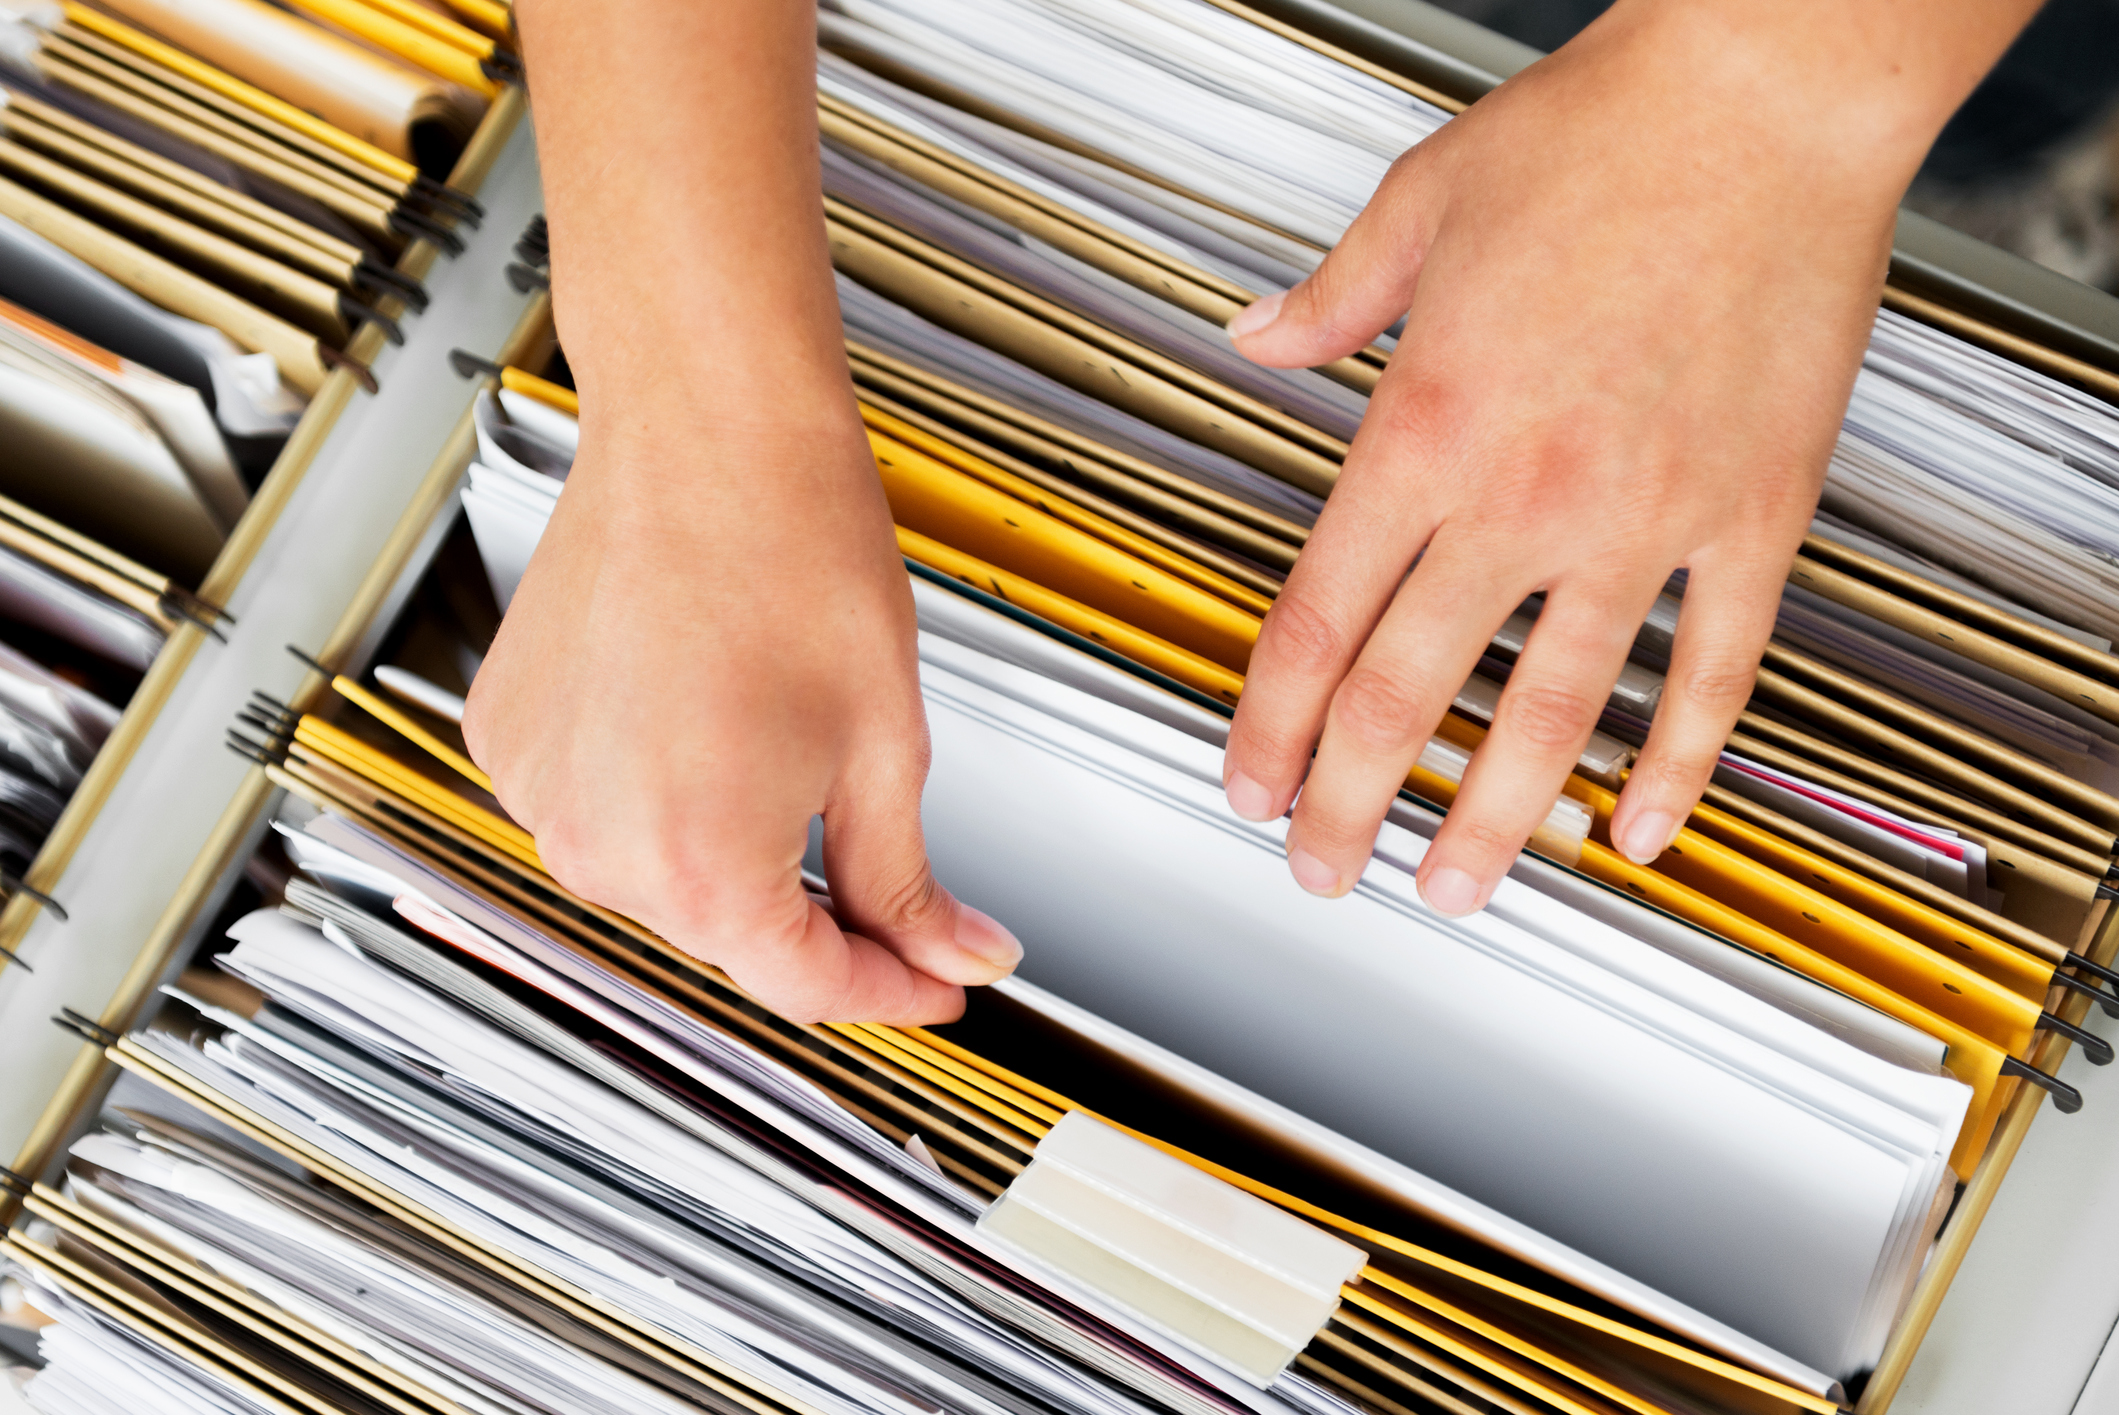 Tips for Organizing Paperwork - Complete Shredding Solutions